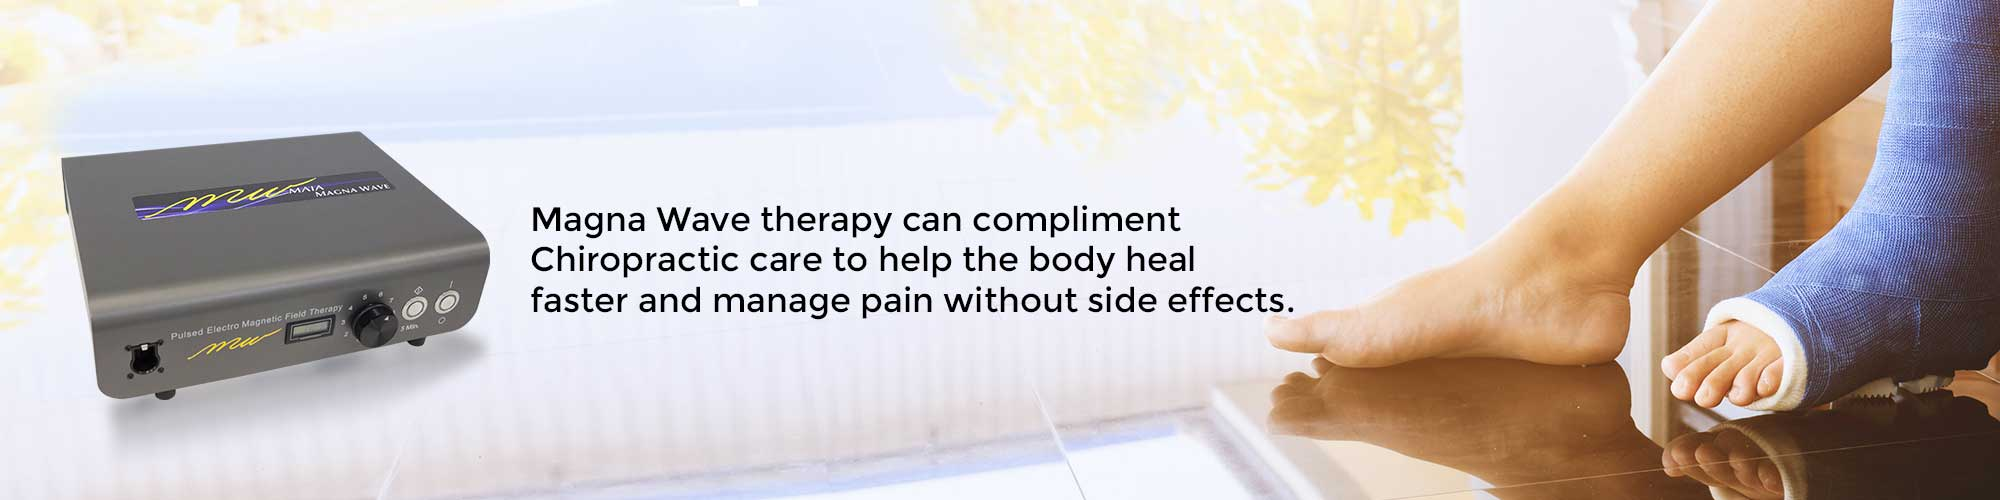 Magna Wave therapy can compliment Chiropractic care to help the body heal faster and manage pain without side effects.